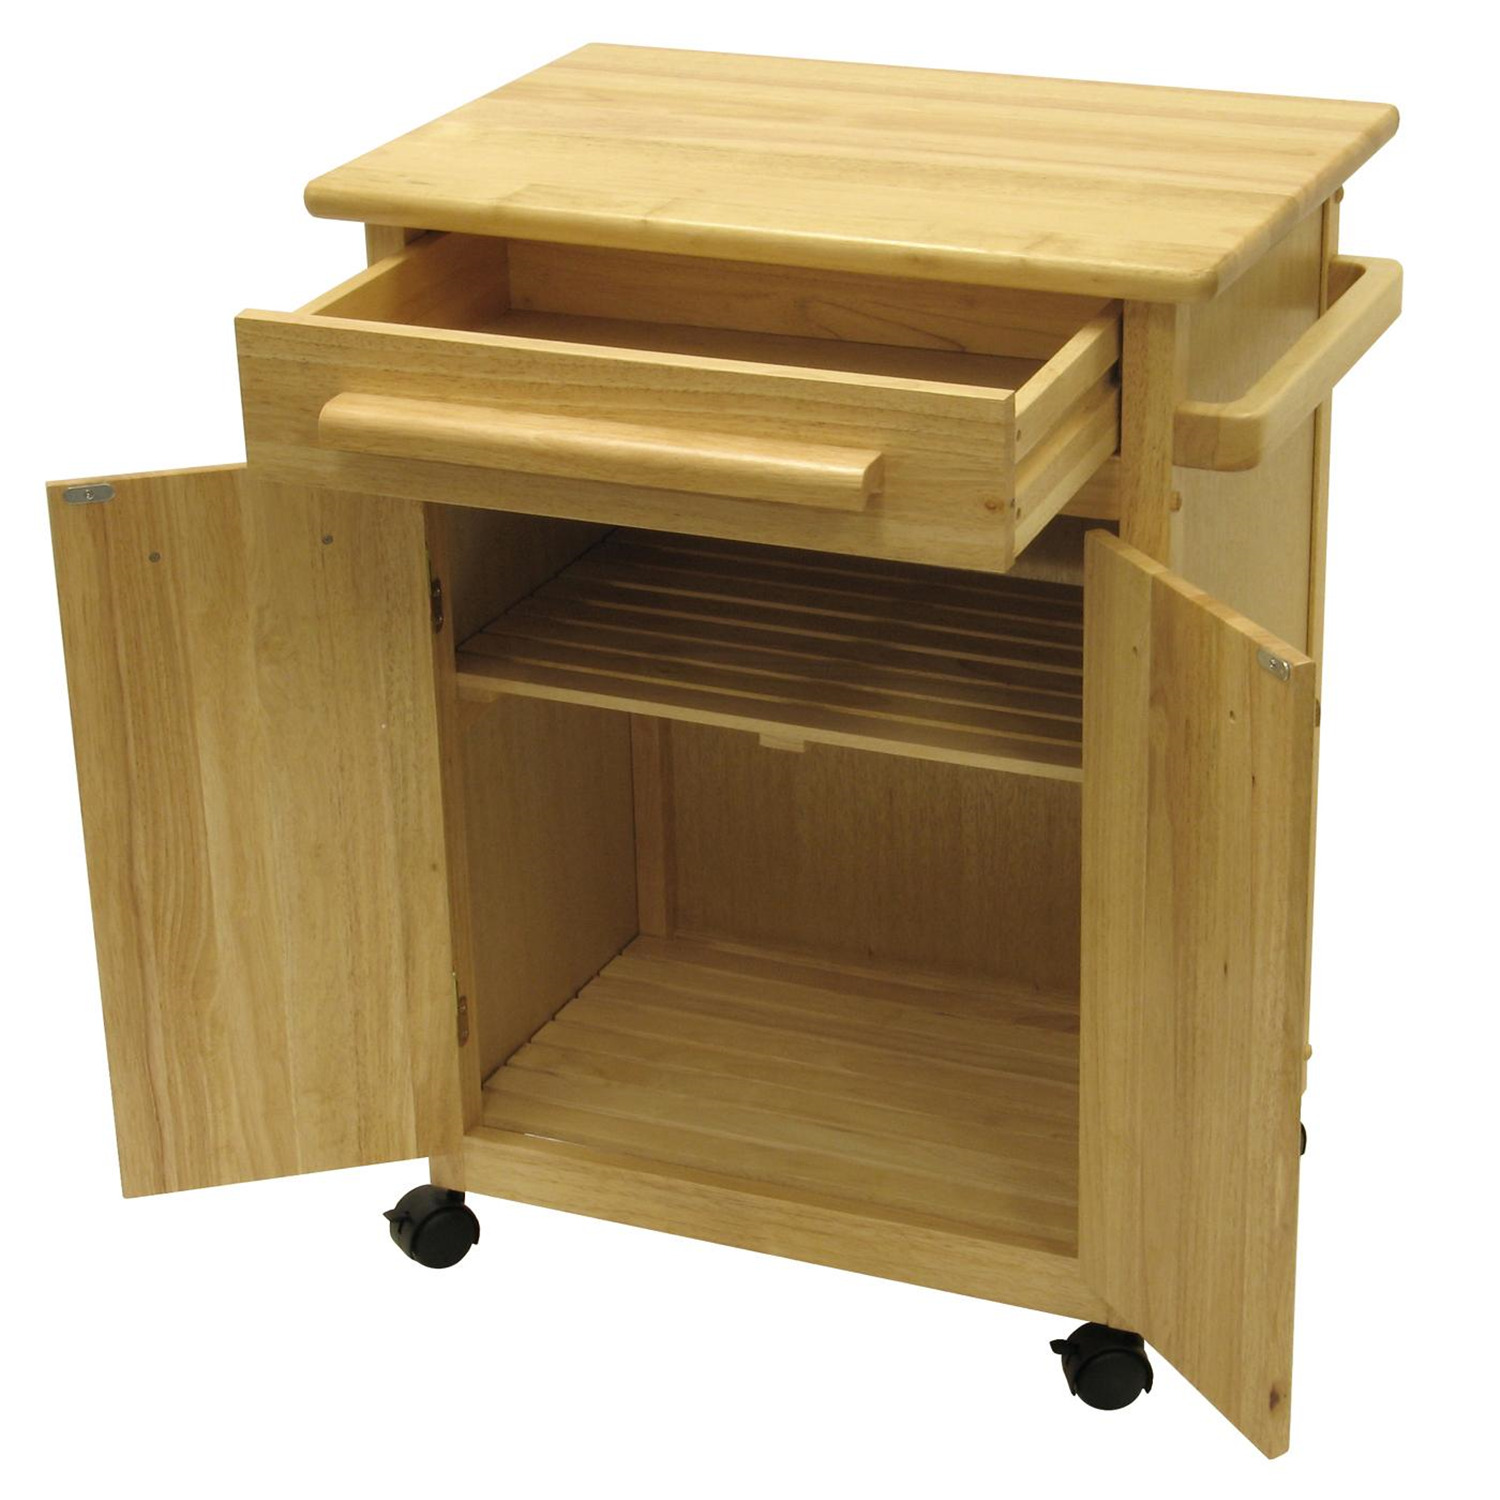 Kitchen Cart With Drawers: Kitchen Cart With One Drawer, Cabinet - $149.79